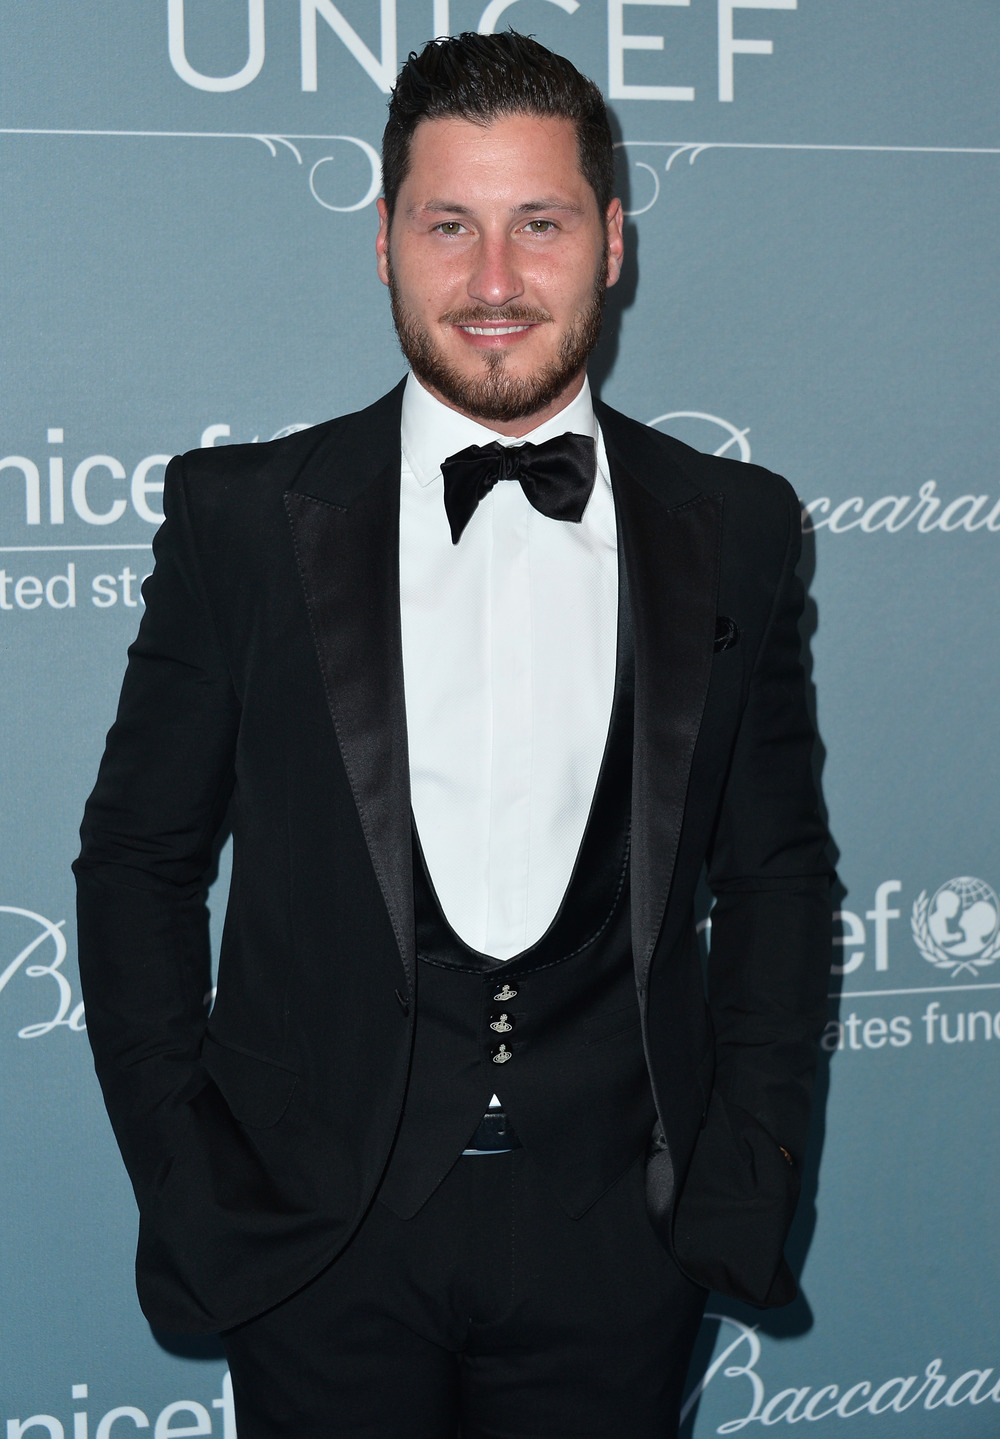 Val Chmerkovskiy's Birthday Wish — Help Dancing With the Stars Pro Raise $25K For Pencils of Promise